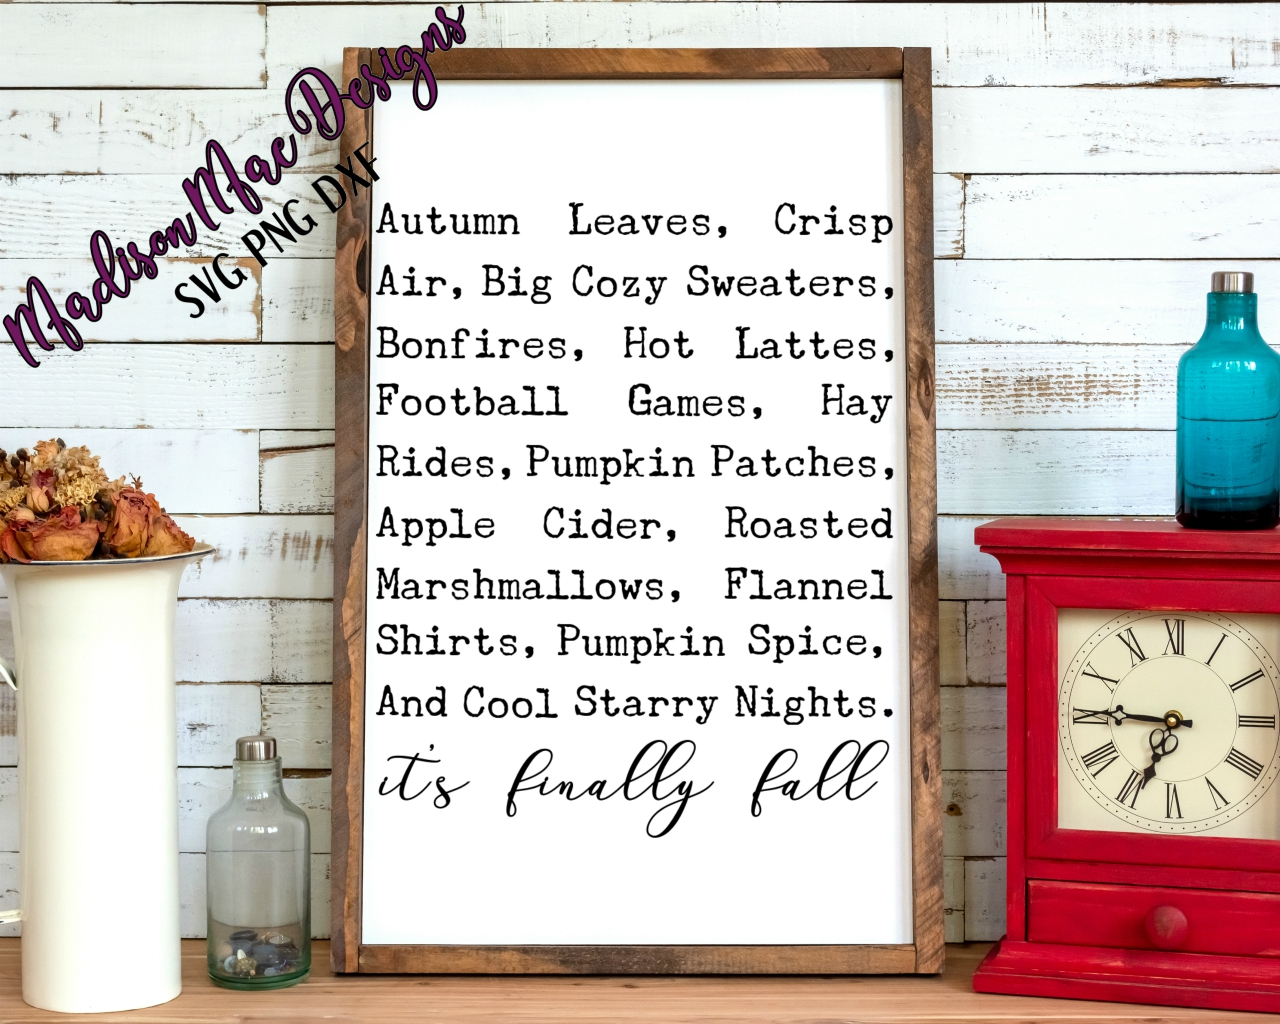 It's Finally Fall SVG Sign Design example image 2